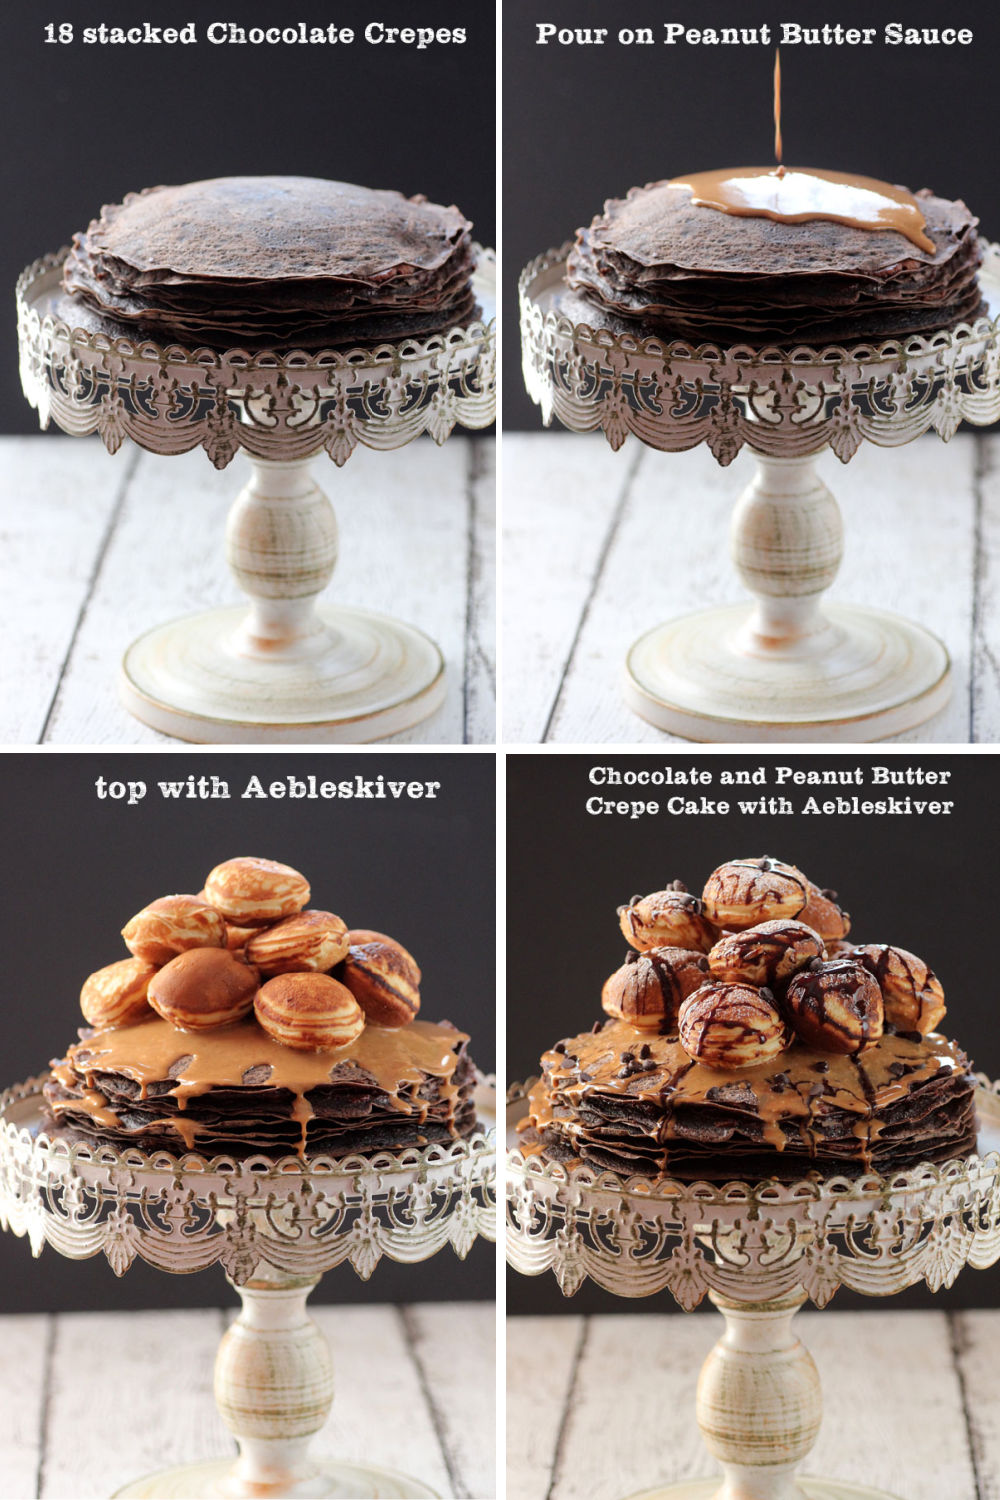 Collage image on how to assemble the chocolate and peanut butter crepe cake.